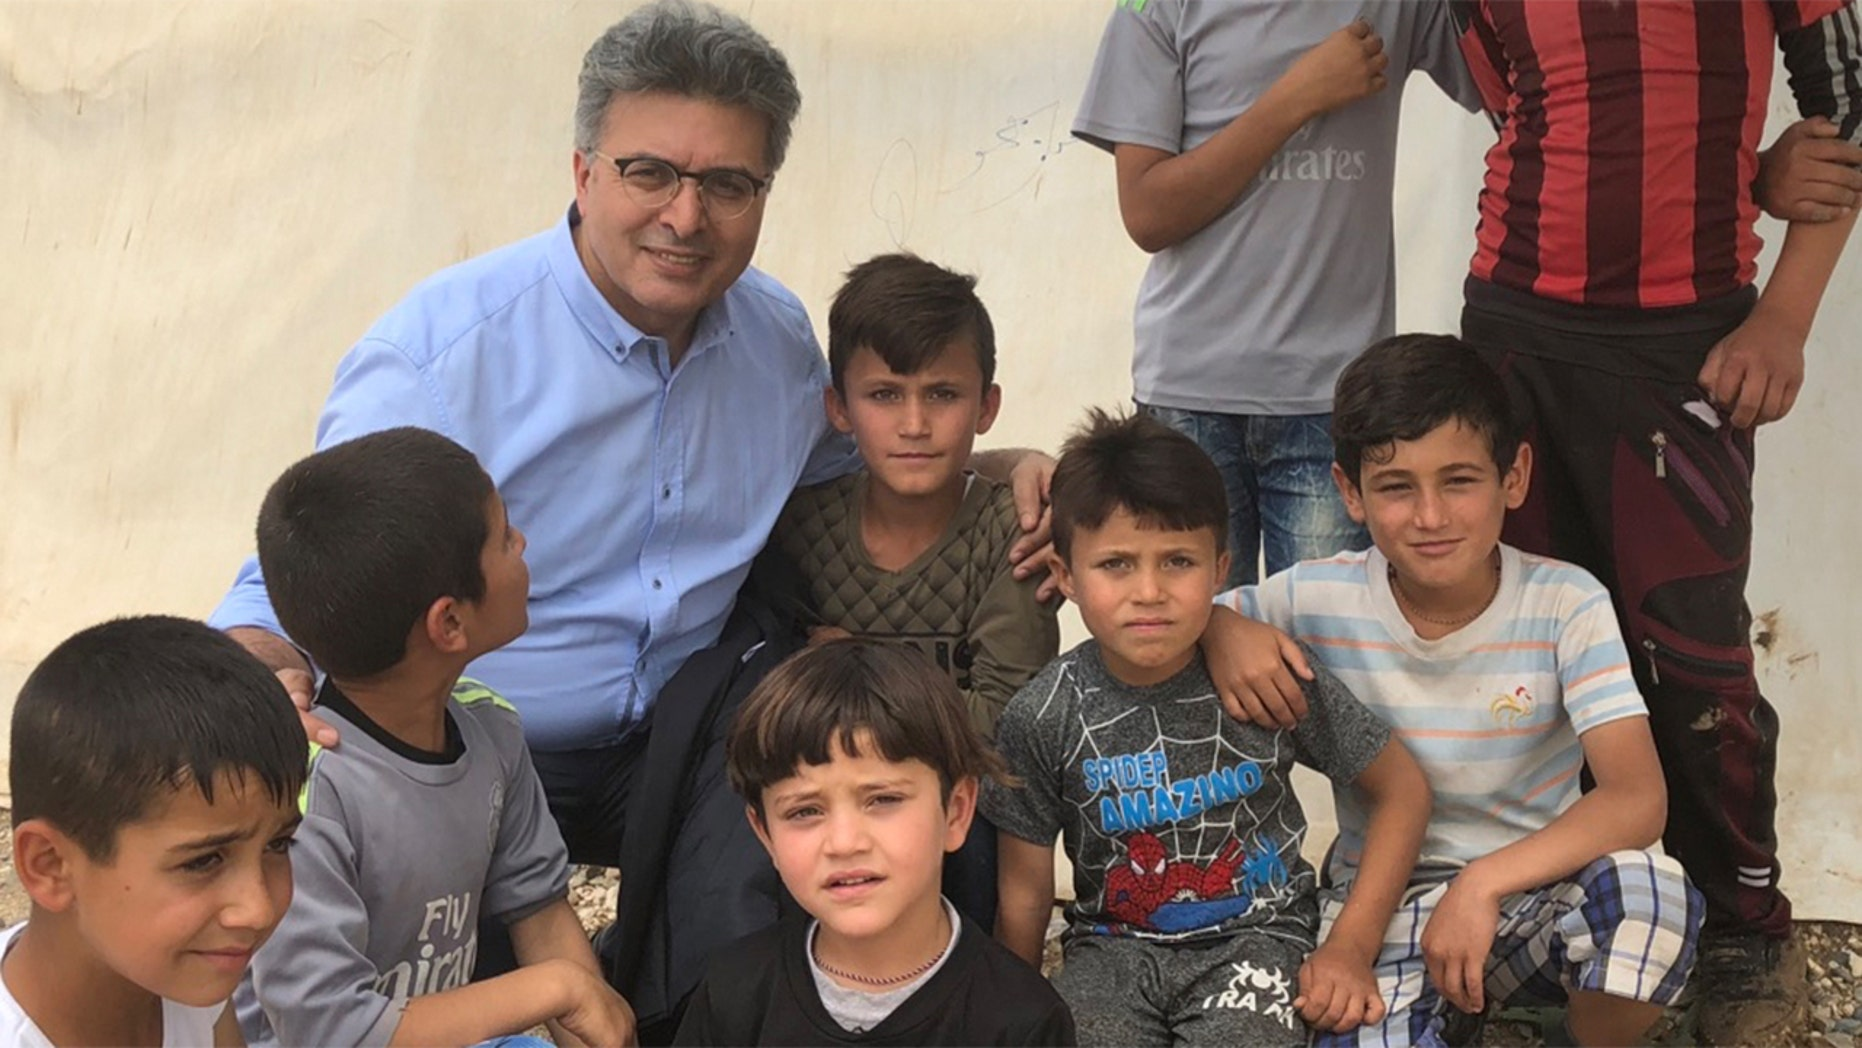 Dr. Kizihan operates a clinic near Stuttgart, Germany, that treats Yazidis who have been traumatized by ISIS.